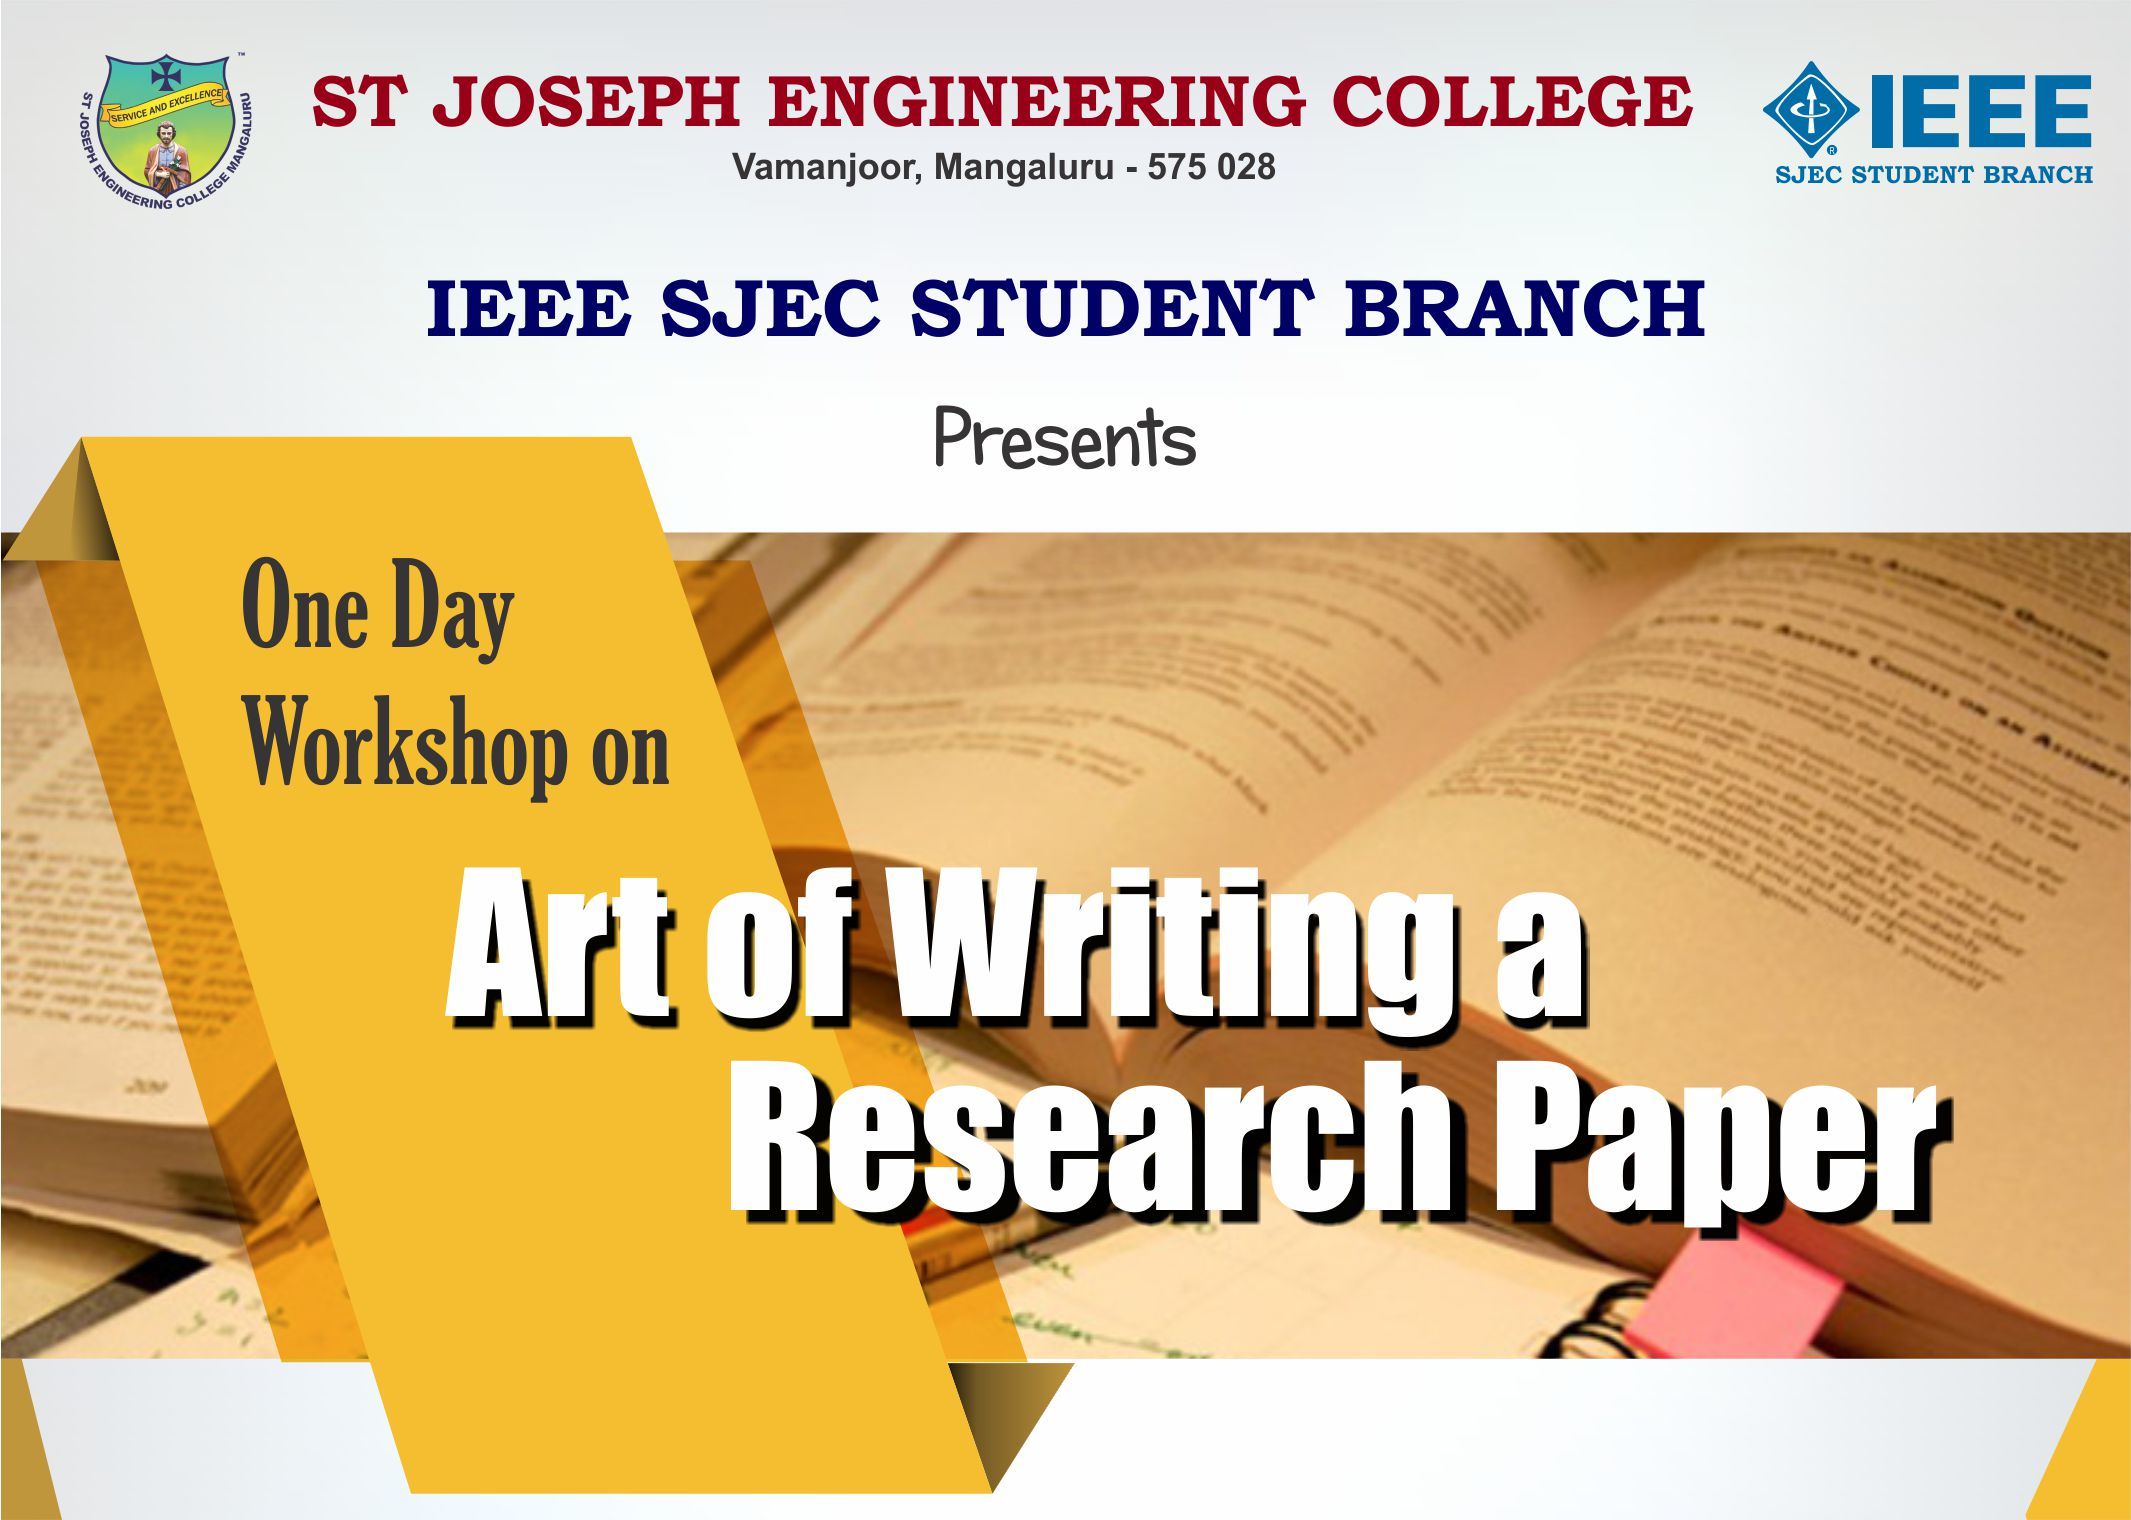 005 Research Paper About Writing Workshop Rare Topics On Indian In English Skills Pdf Full